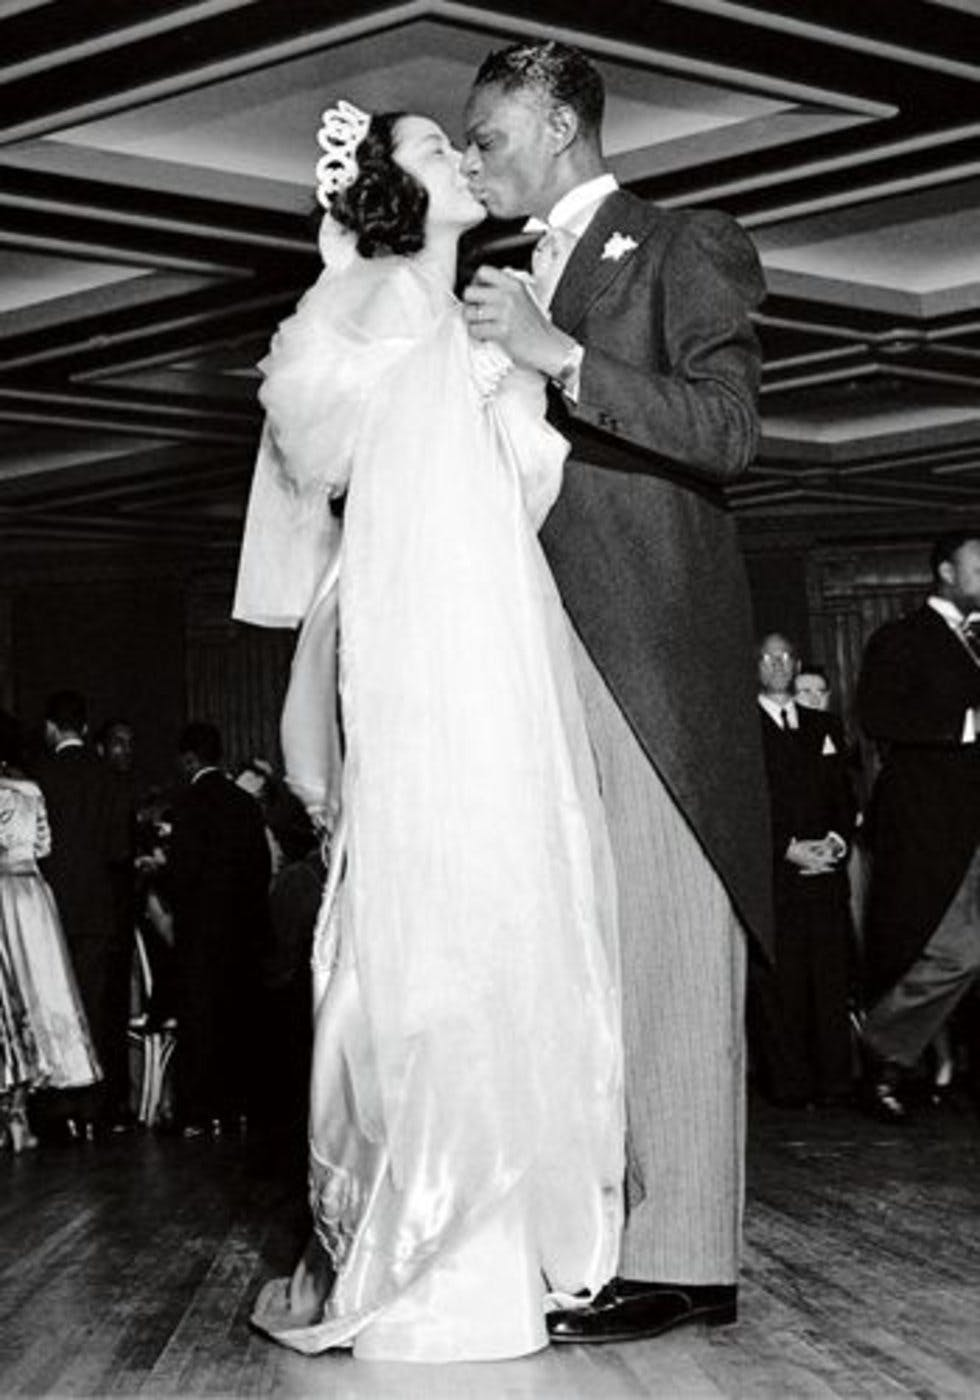 c1c3cc7dd53c American jazz singers Nat King Cole and Maria Ellington share a kiss while  dancing at their wedding reception in Harlem, New York on 28 March 1948.